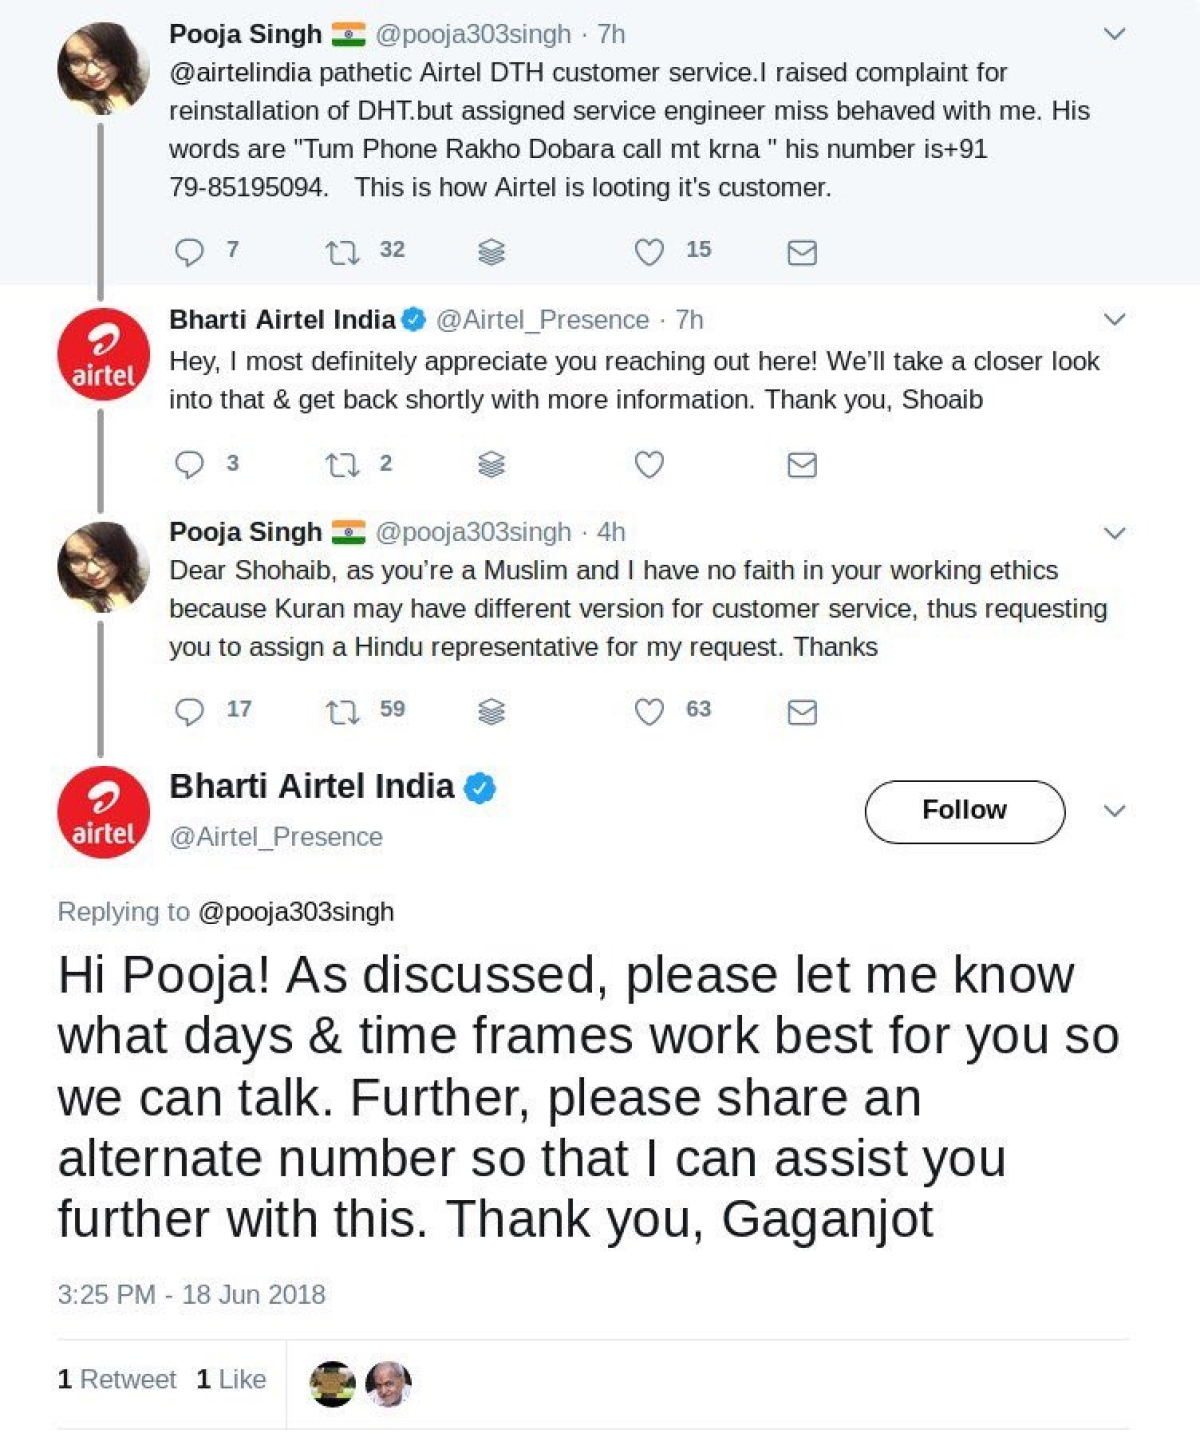 A screenshot of the Twitter conversation between Pooja Singh and Bharti Airtel India.